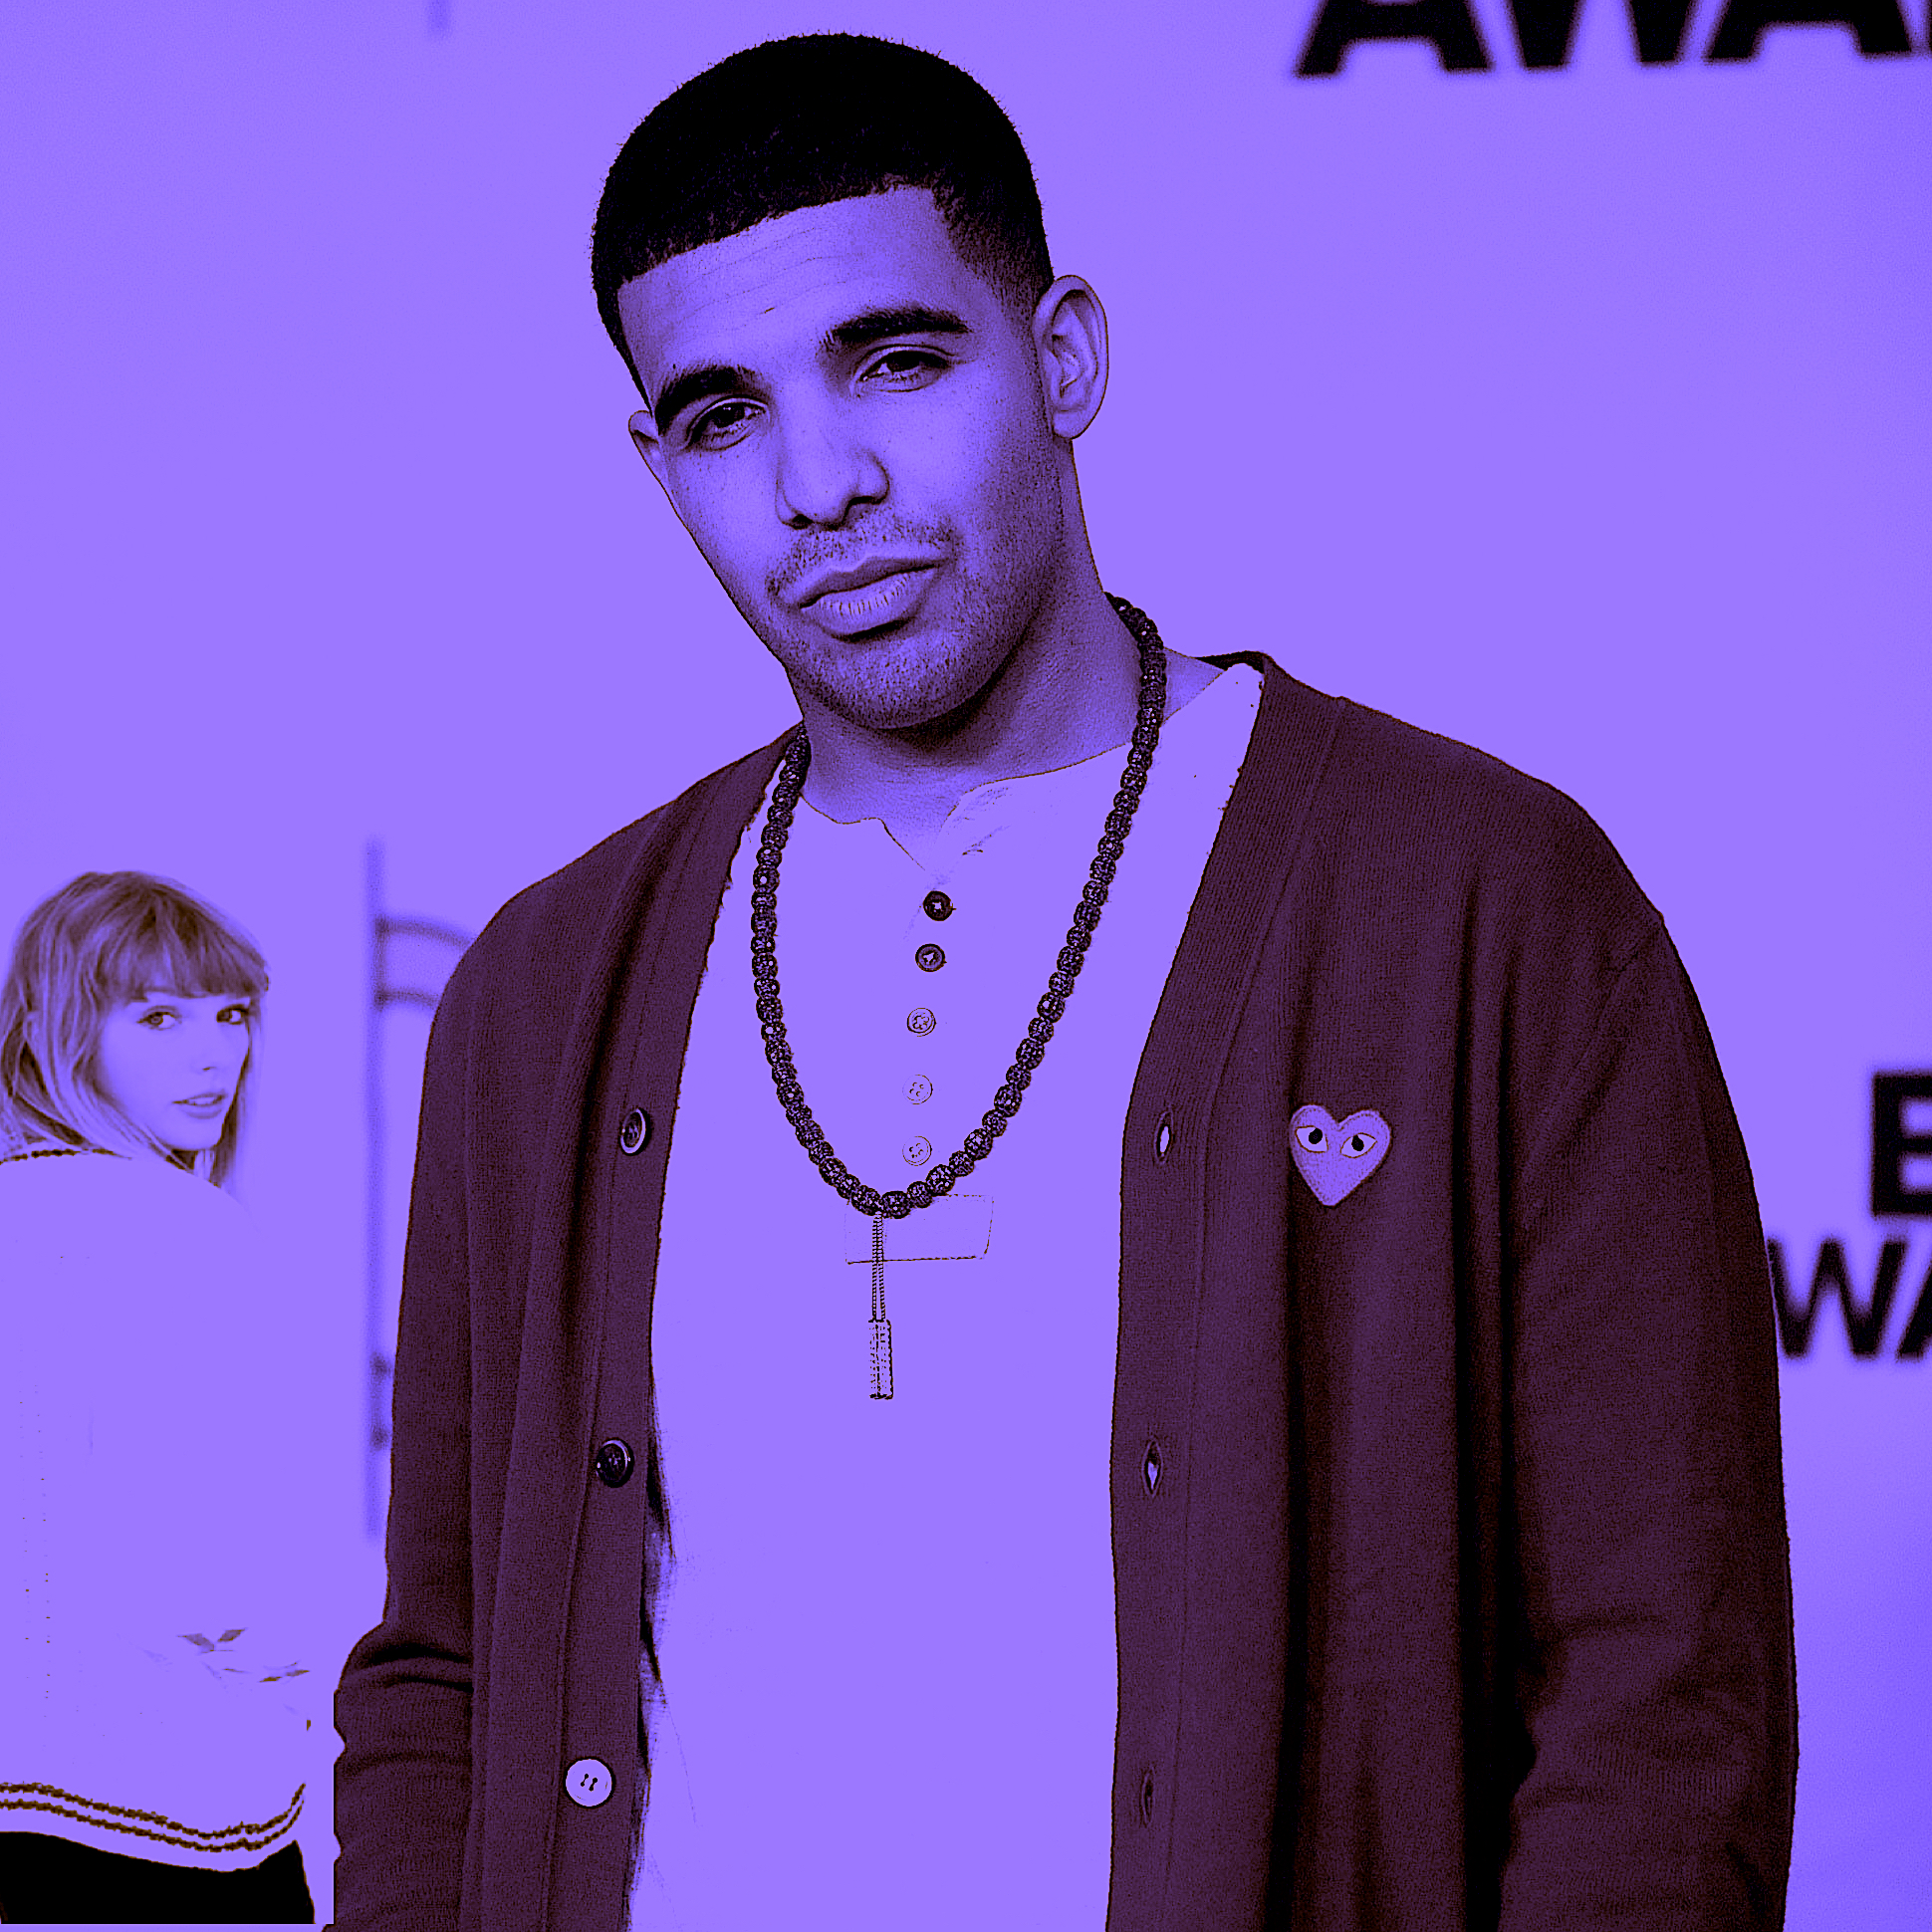 What Cardigan's Next? (Drake Vs Taylor Swift)